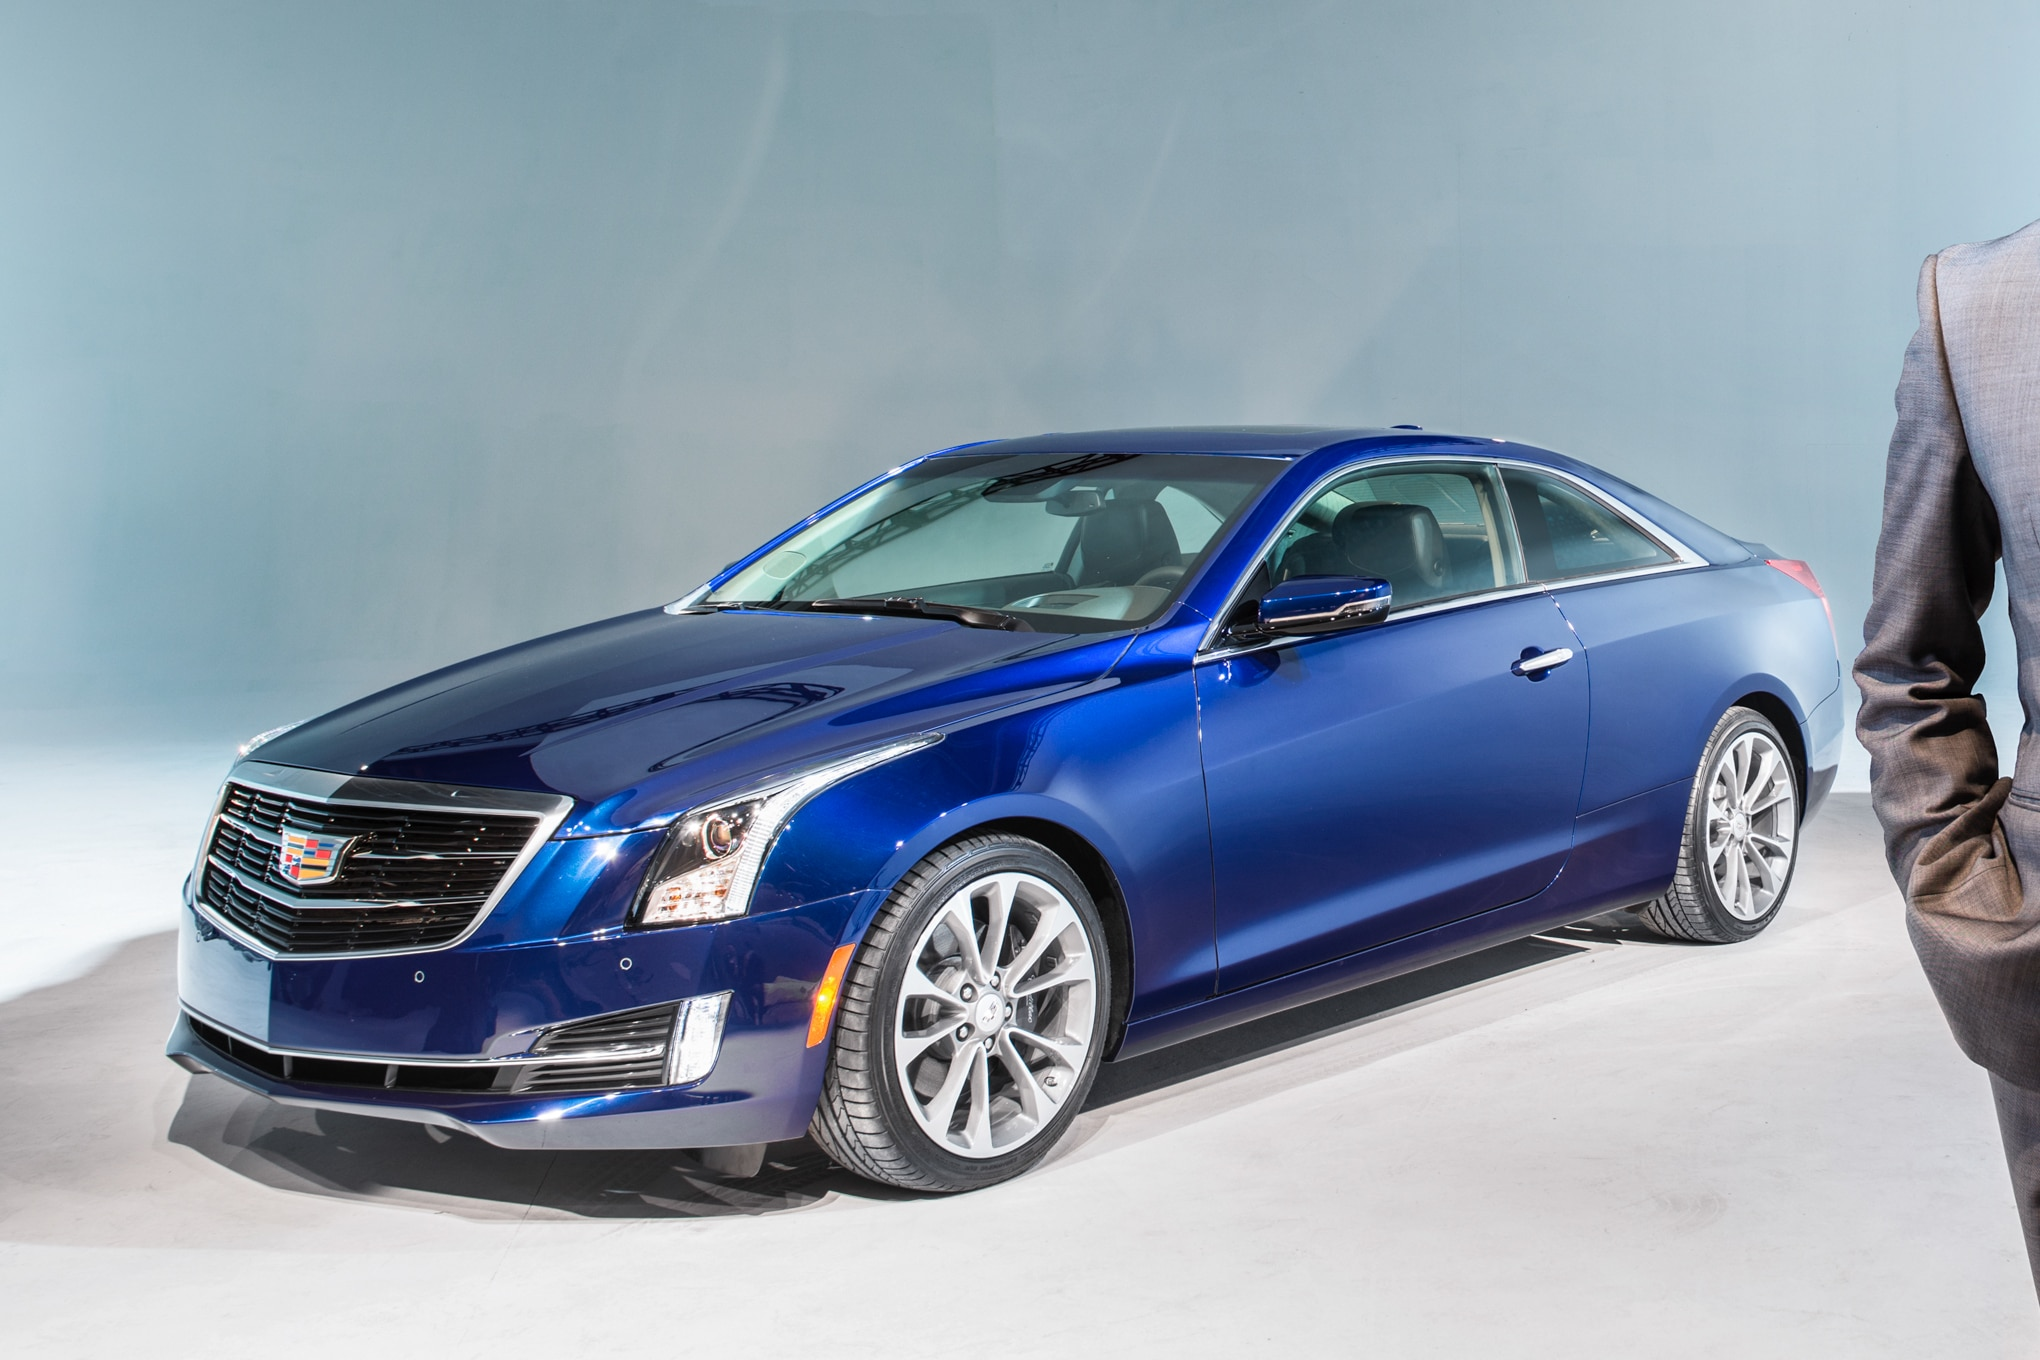 test of ats cadillac review drive coupe expert